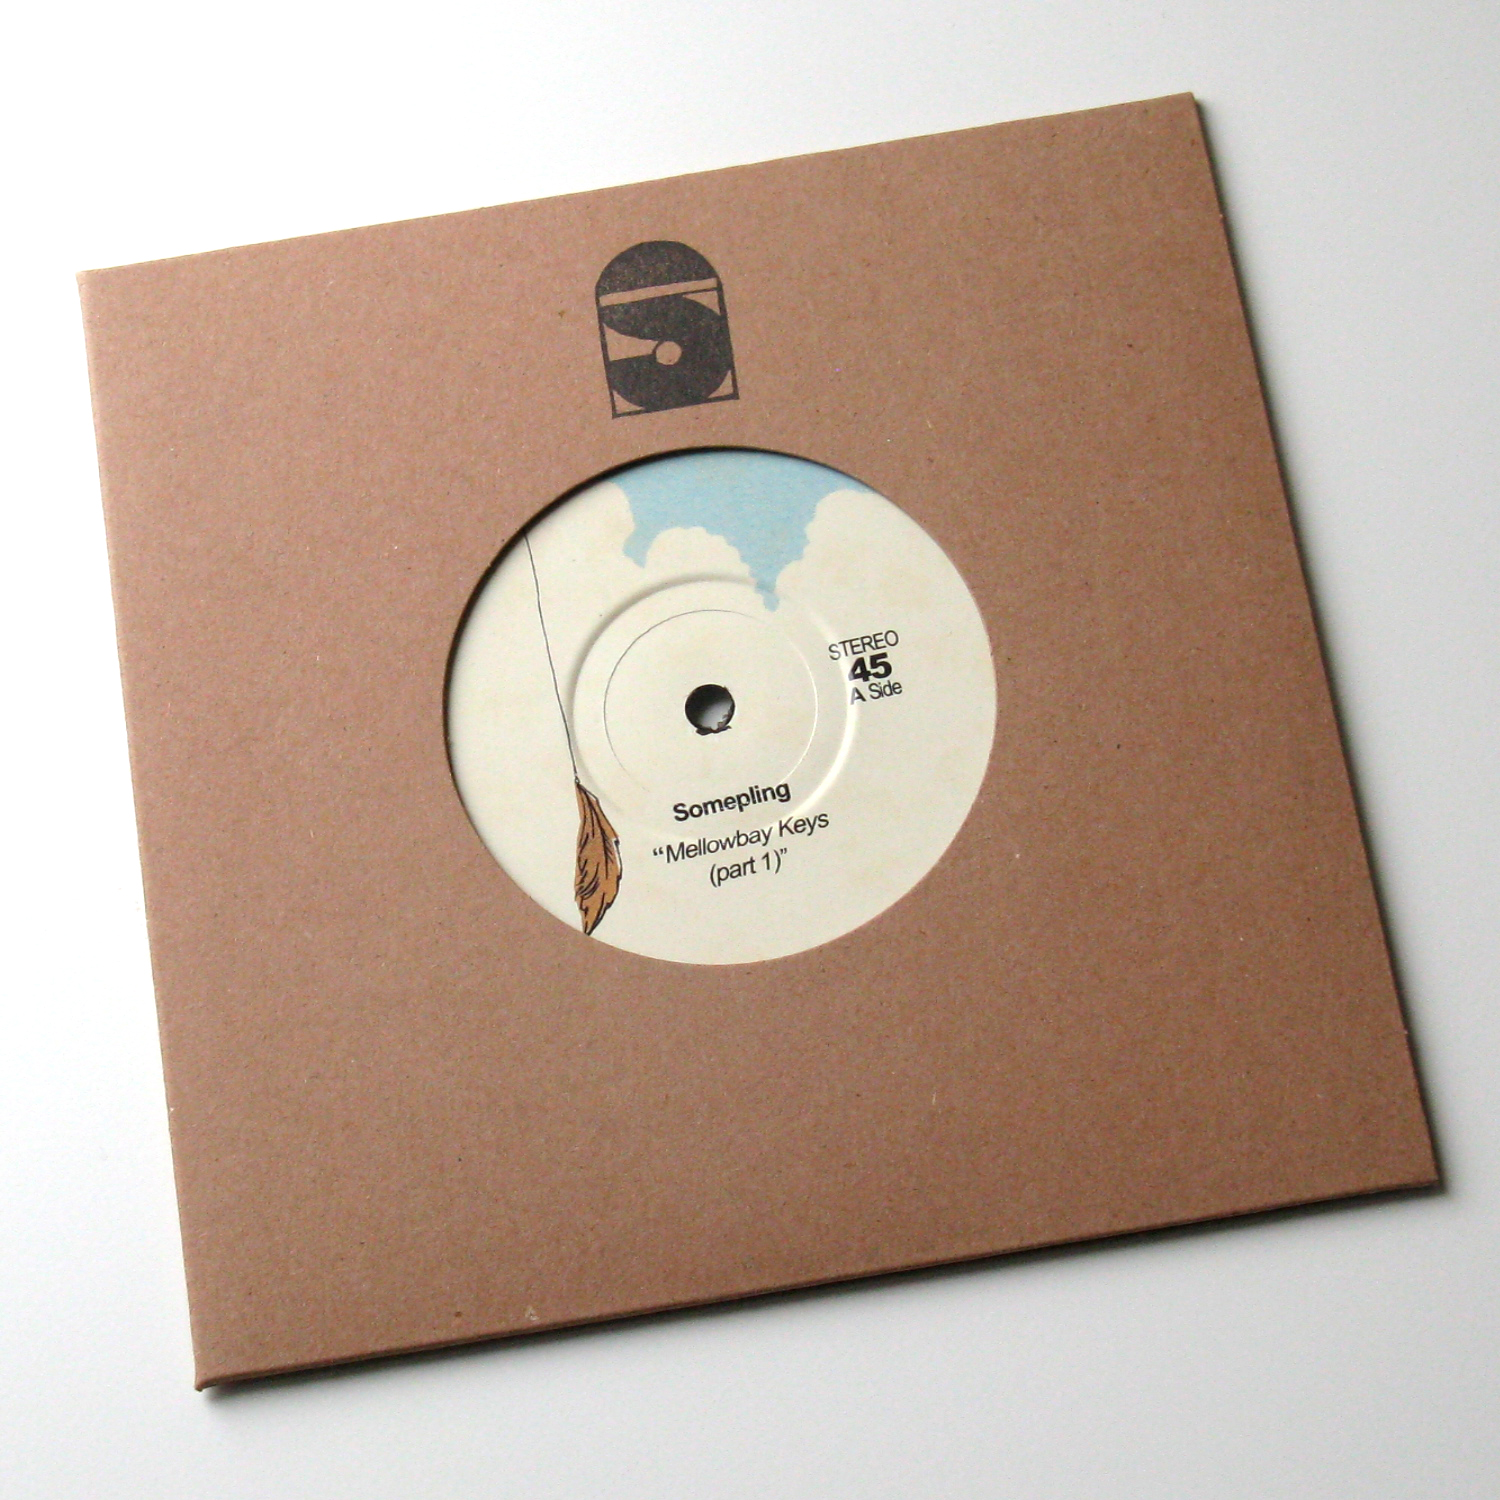 News: Self-released vinyl record by Somepling